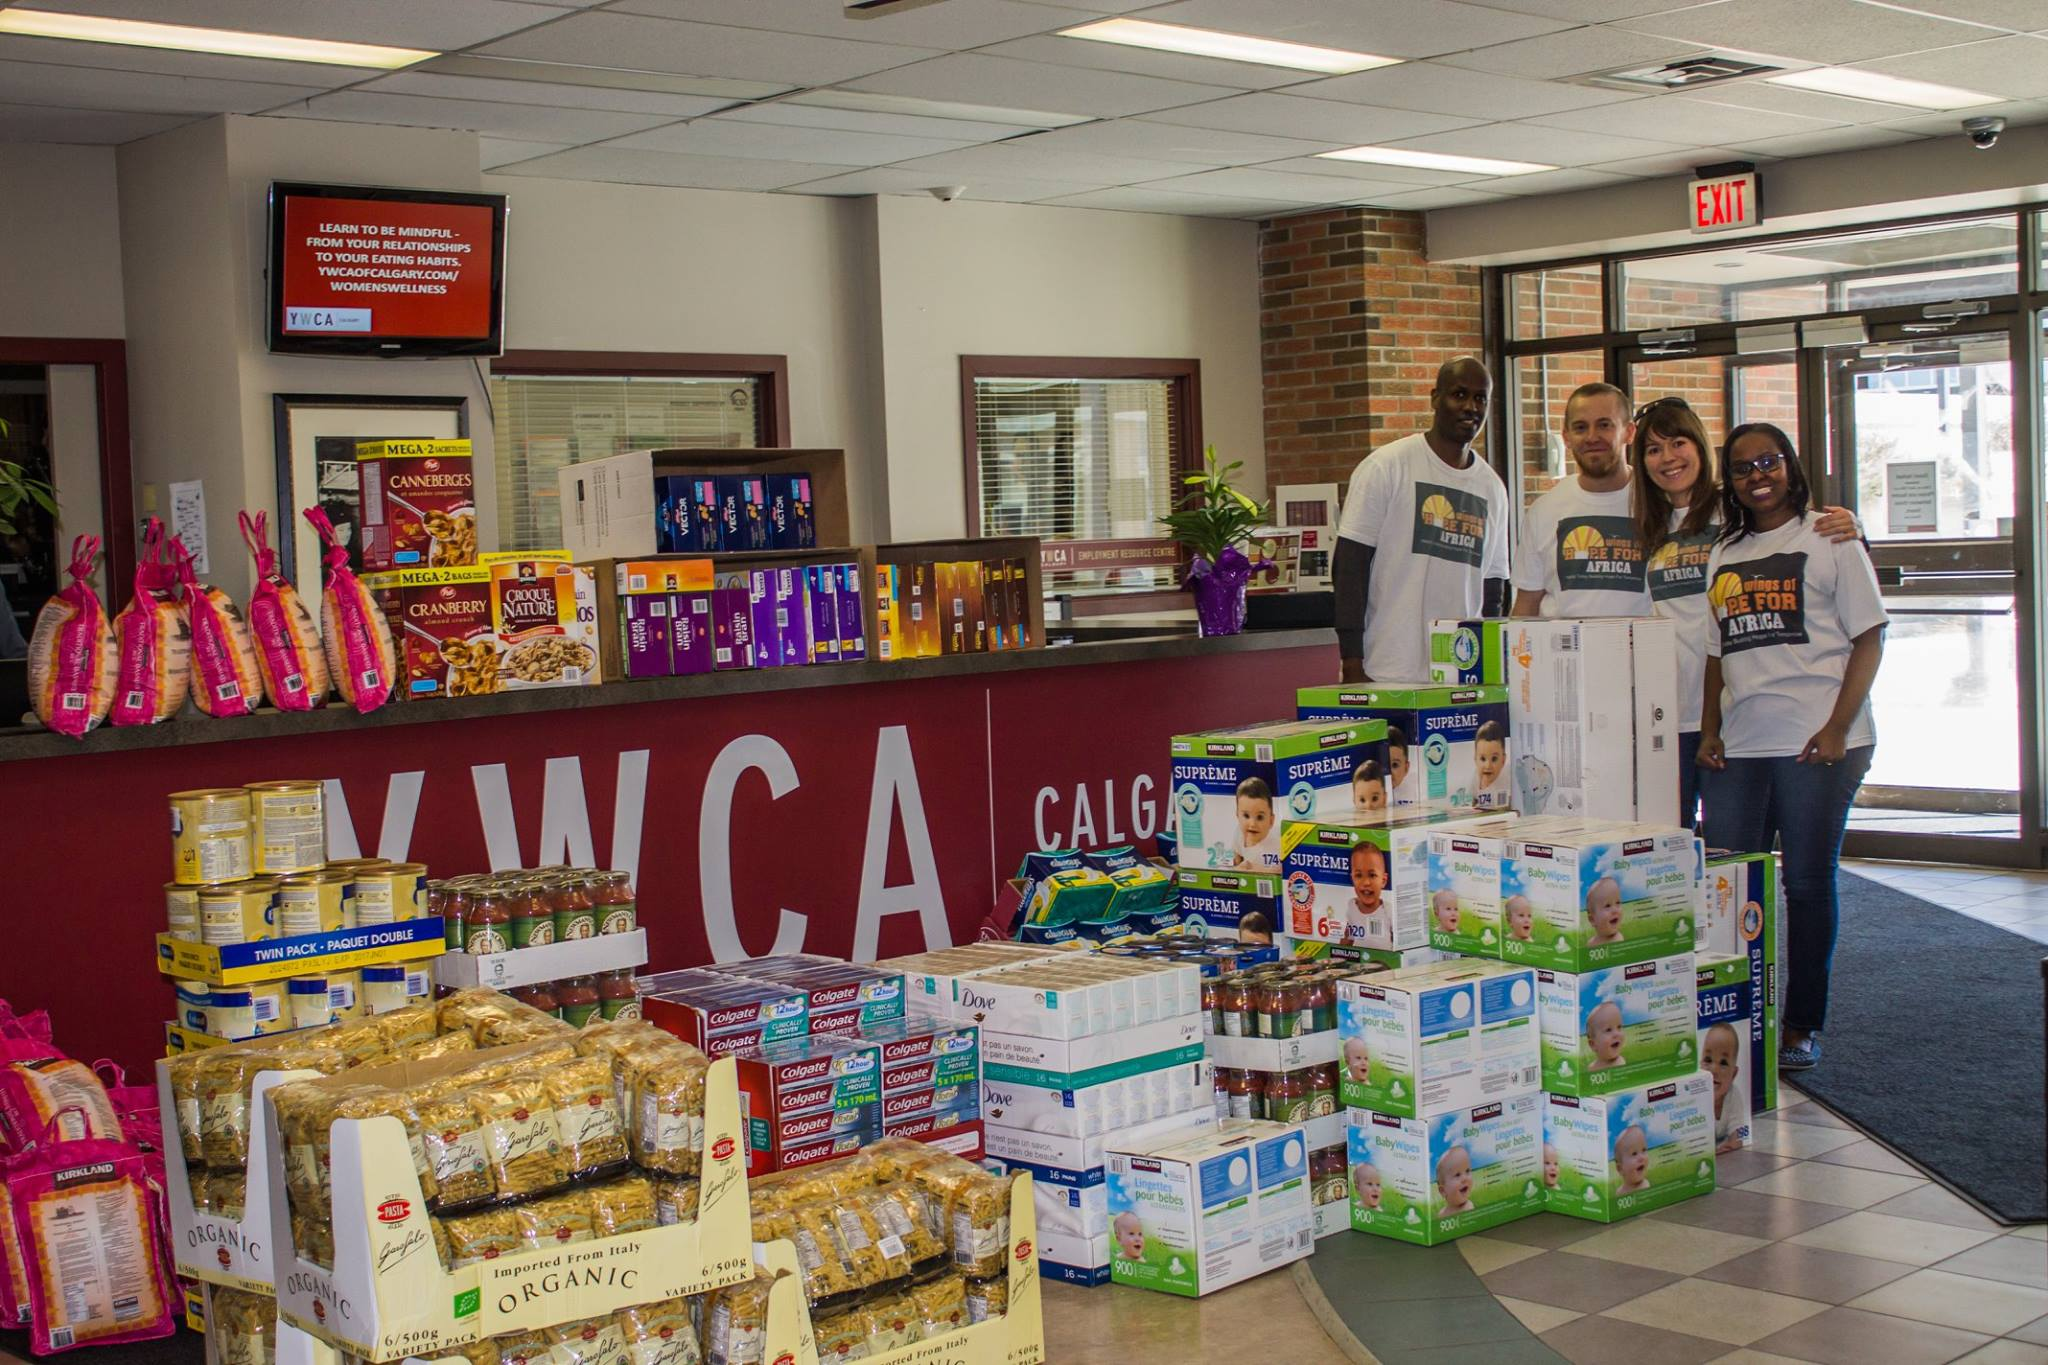 A group of volunteers stand by a large amount of donated goods